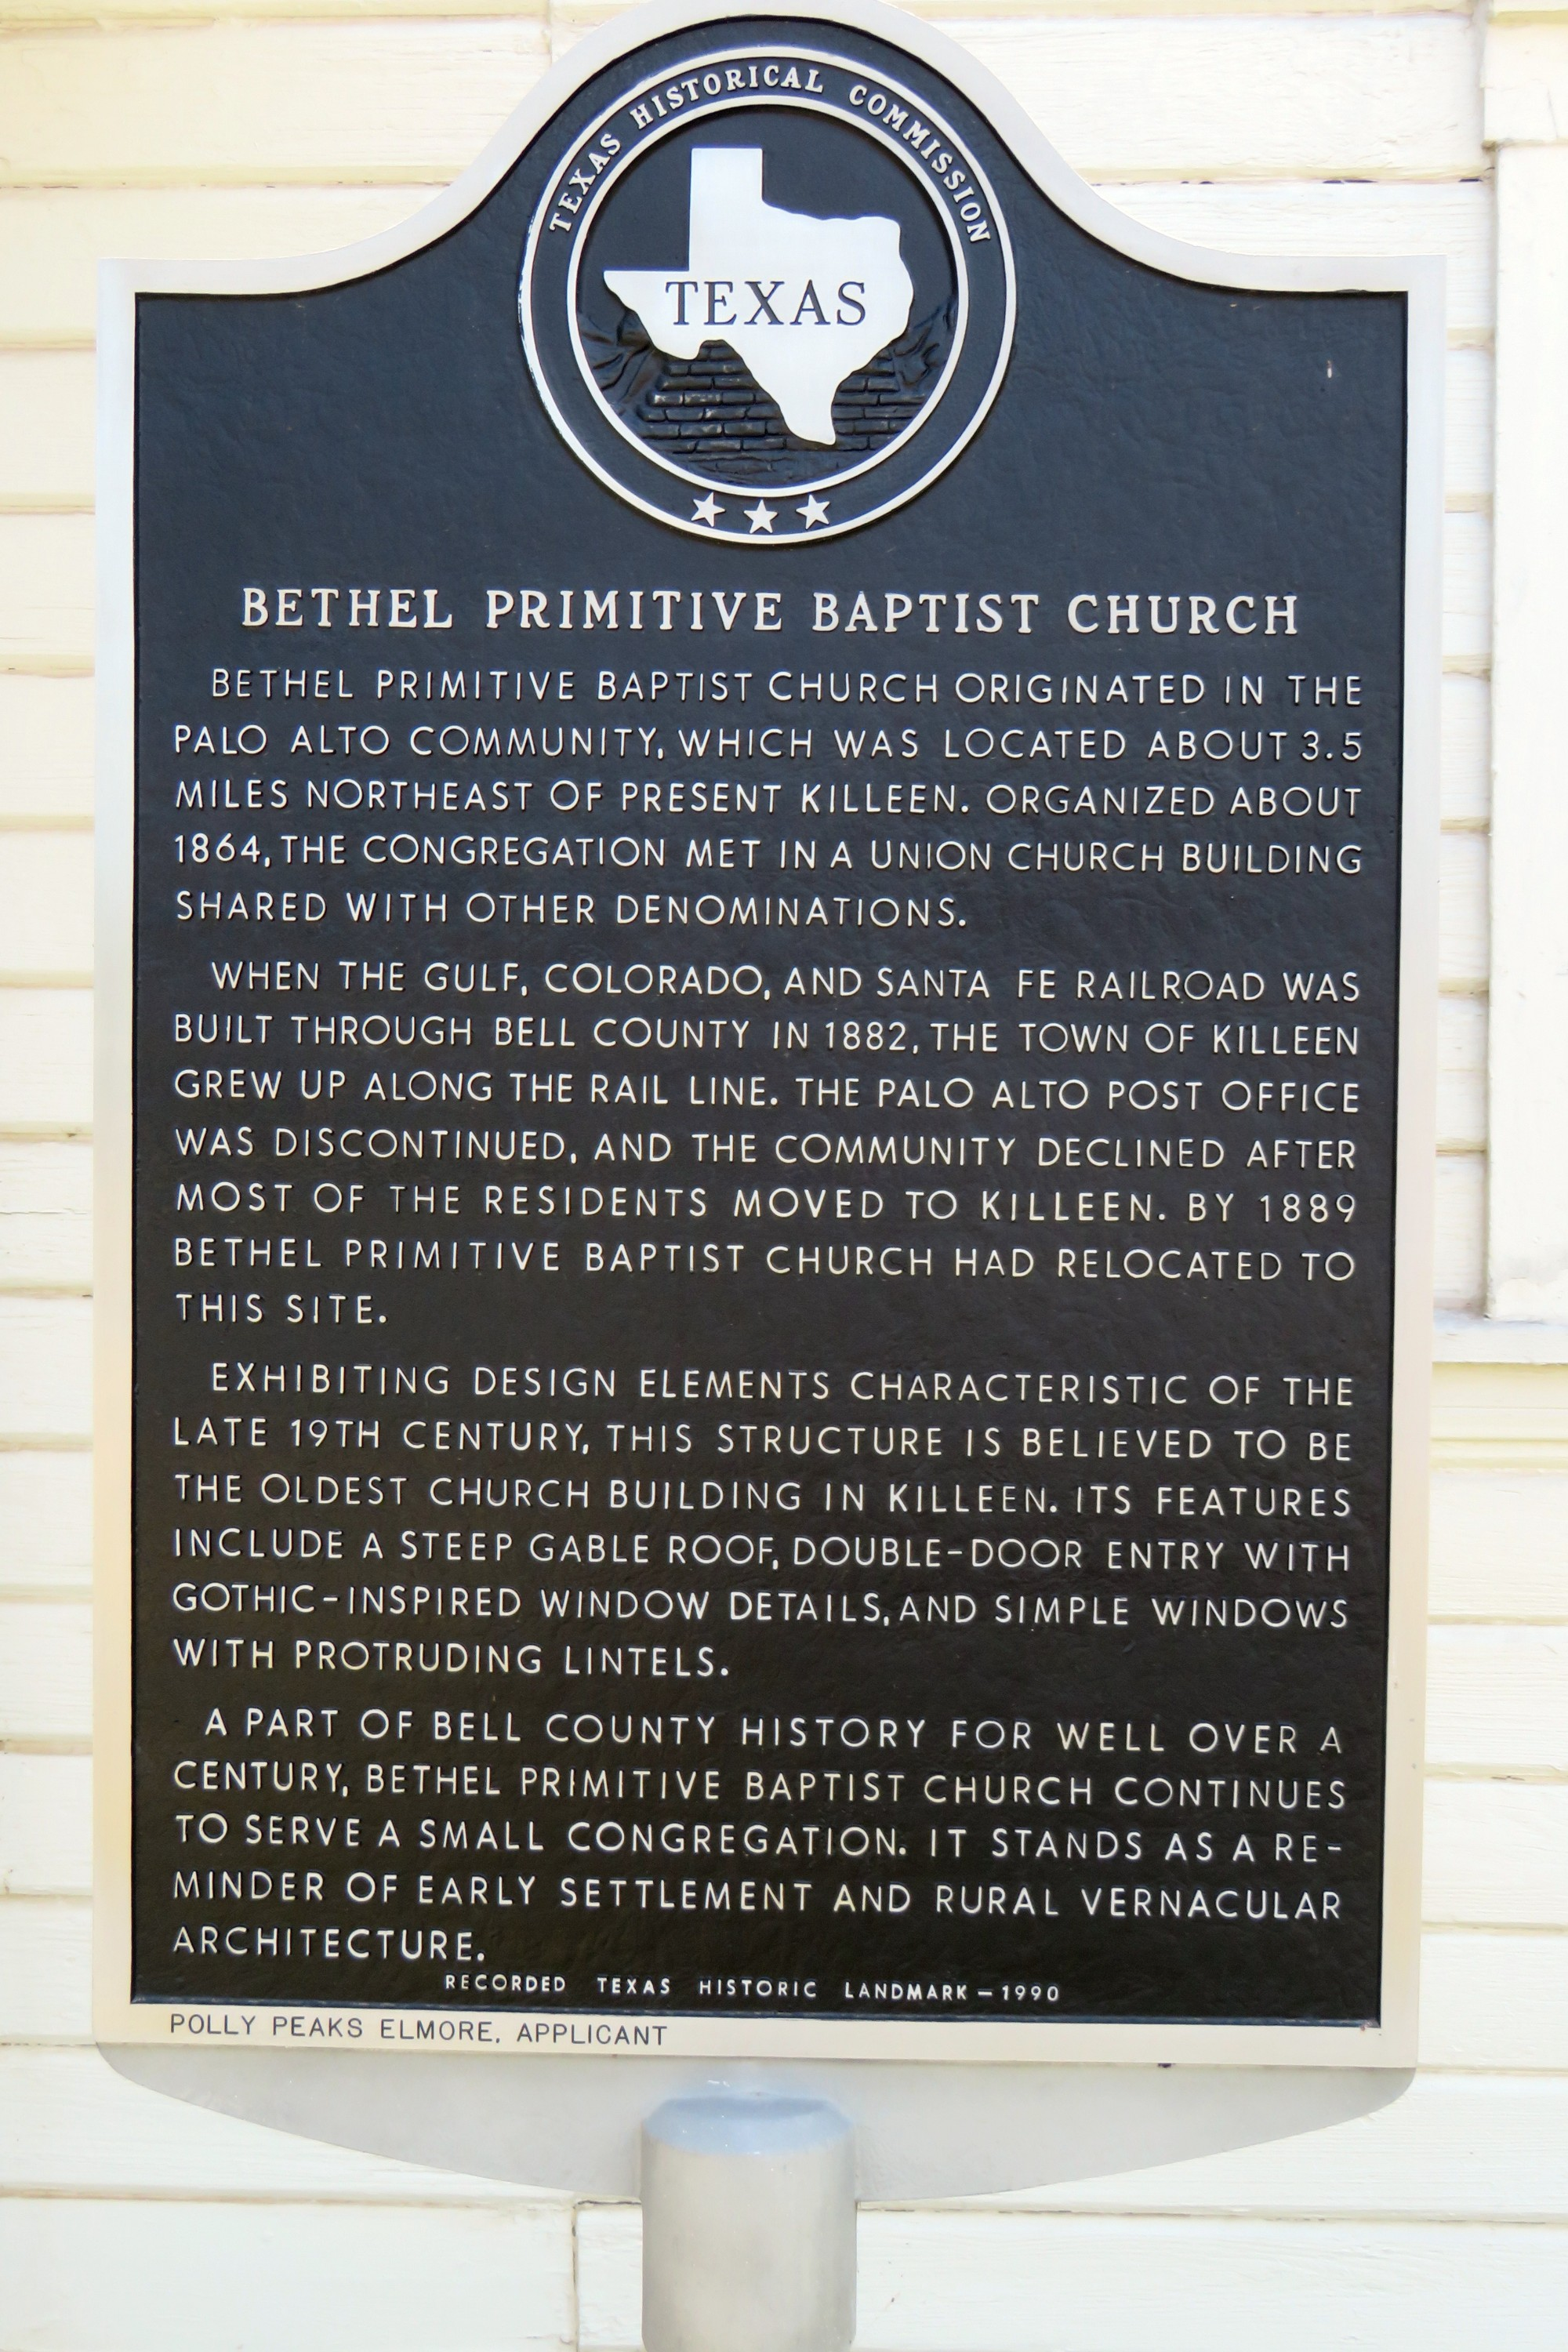 The front of the church includes an official state of Texas historical marker